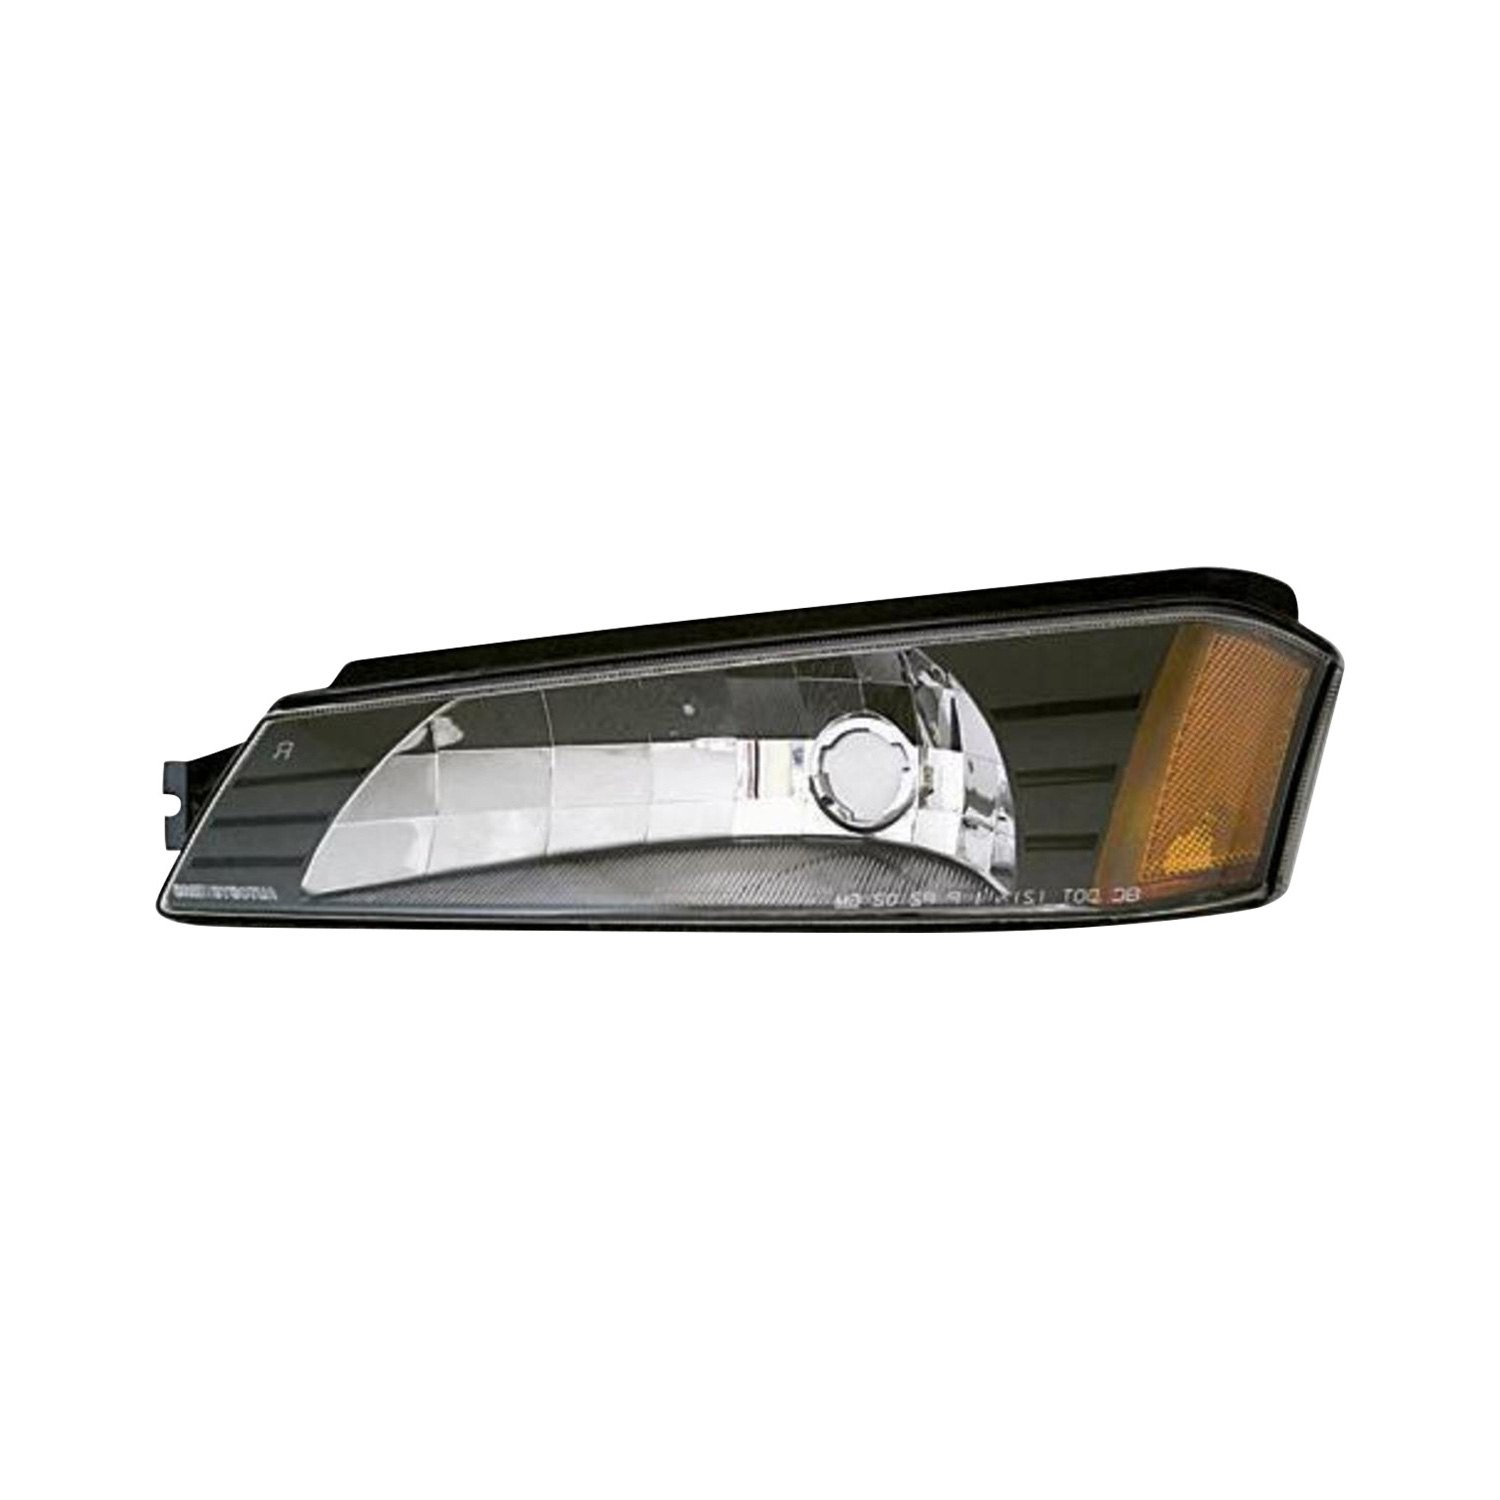 TYC 18 5836 01 1 Driver Side Front NSF Certified Replacement Turn Signal